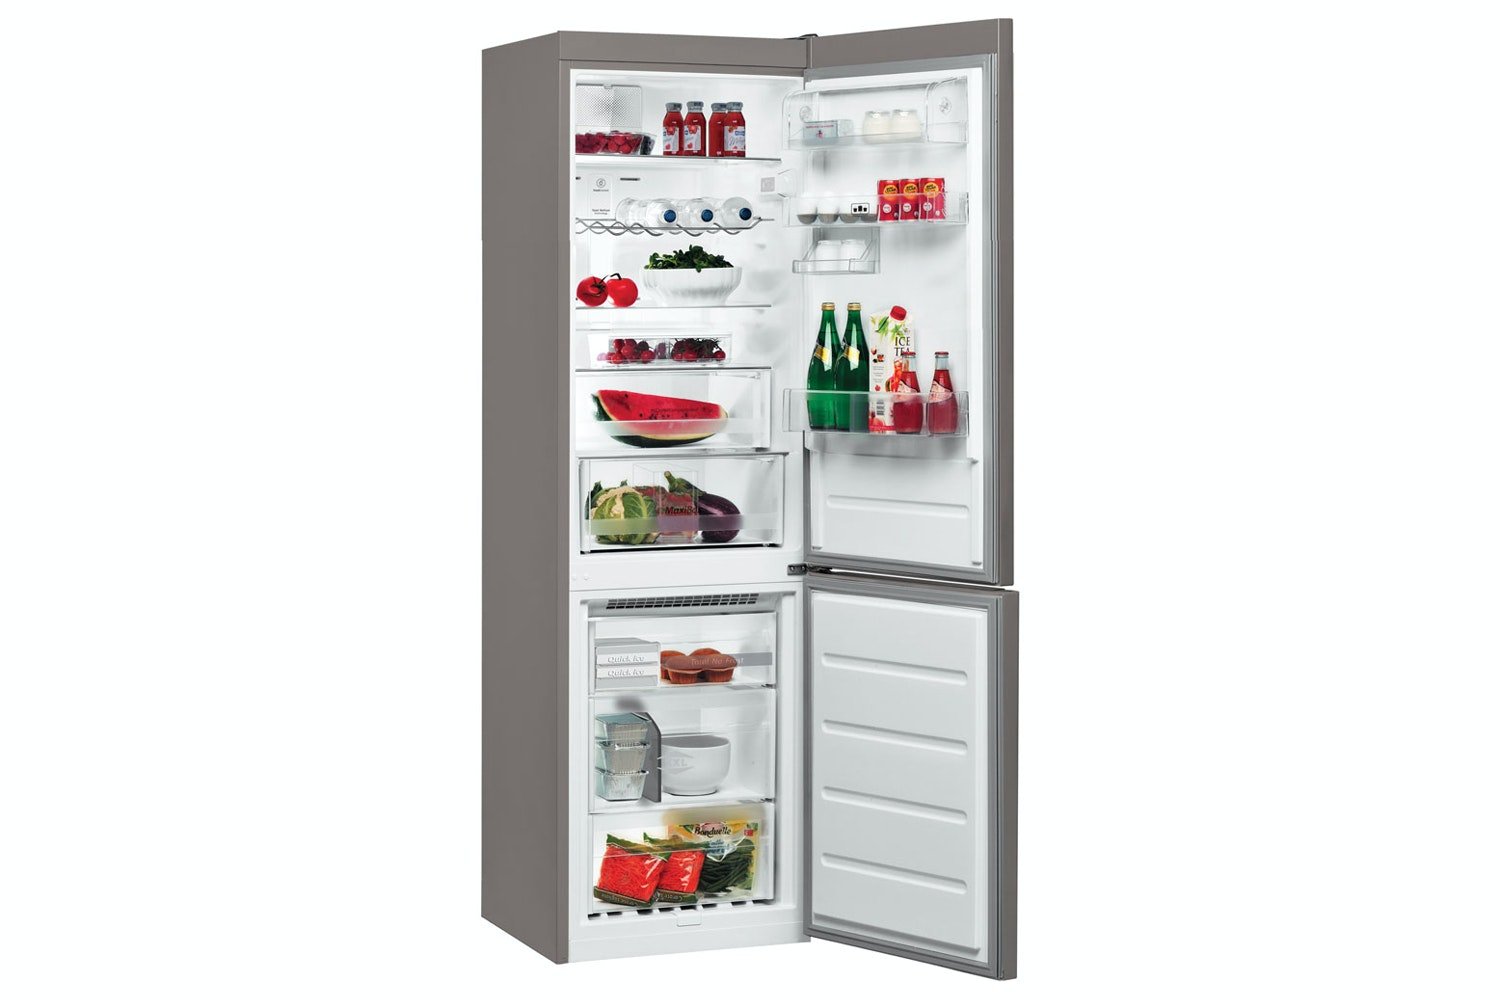 Whirlpool No Frost Fridge Freezer | BSNF8151OX